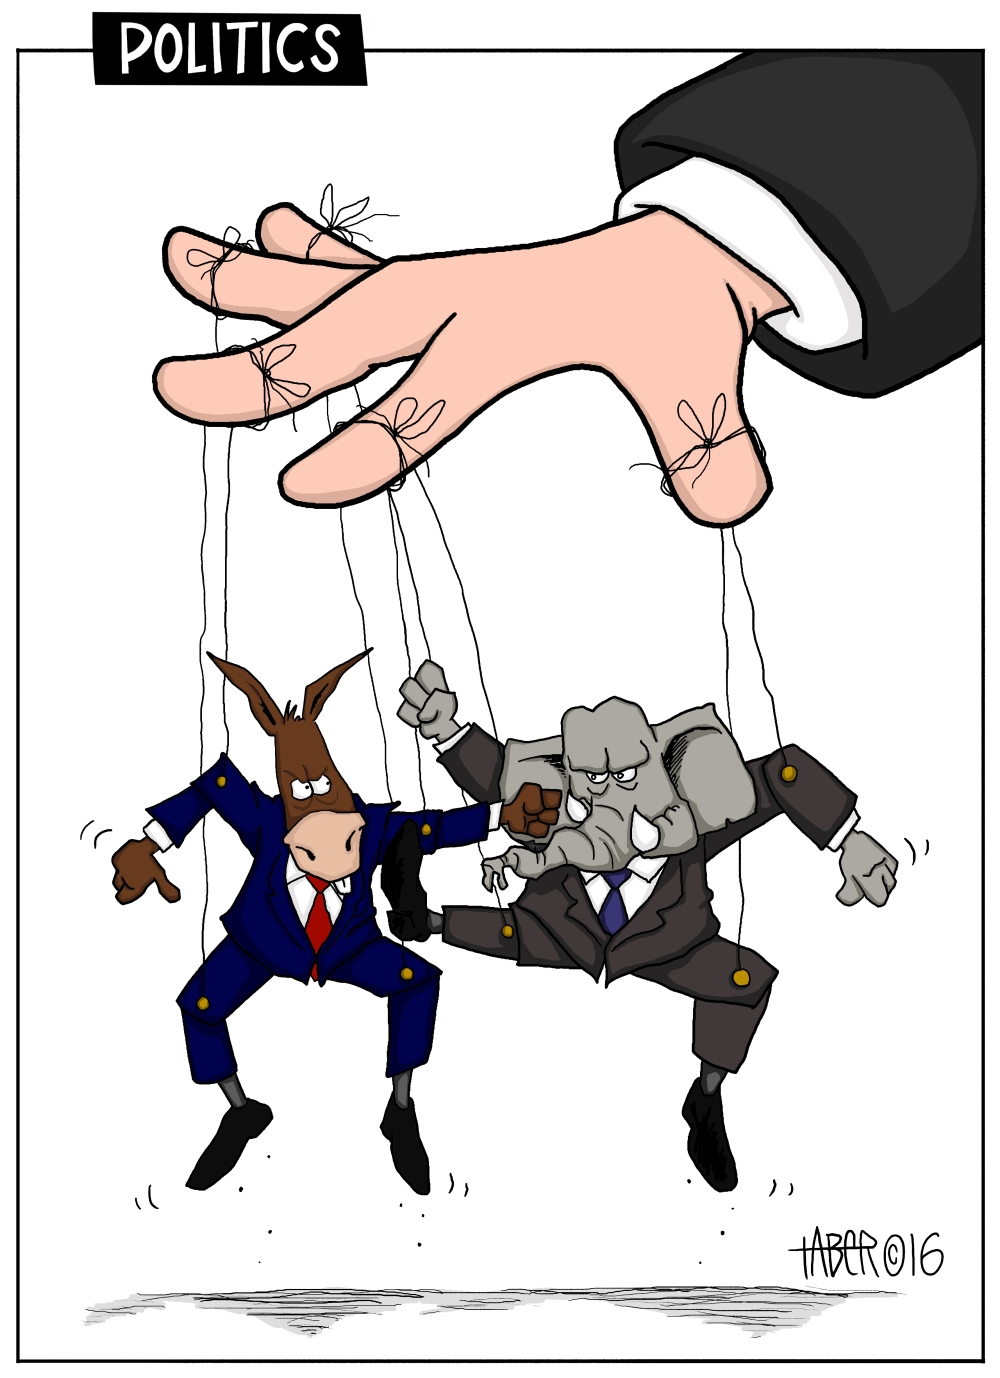 same puppetmaster controls both puppets